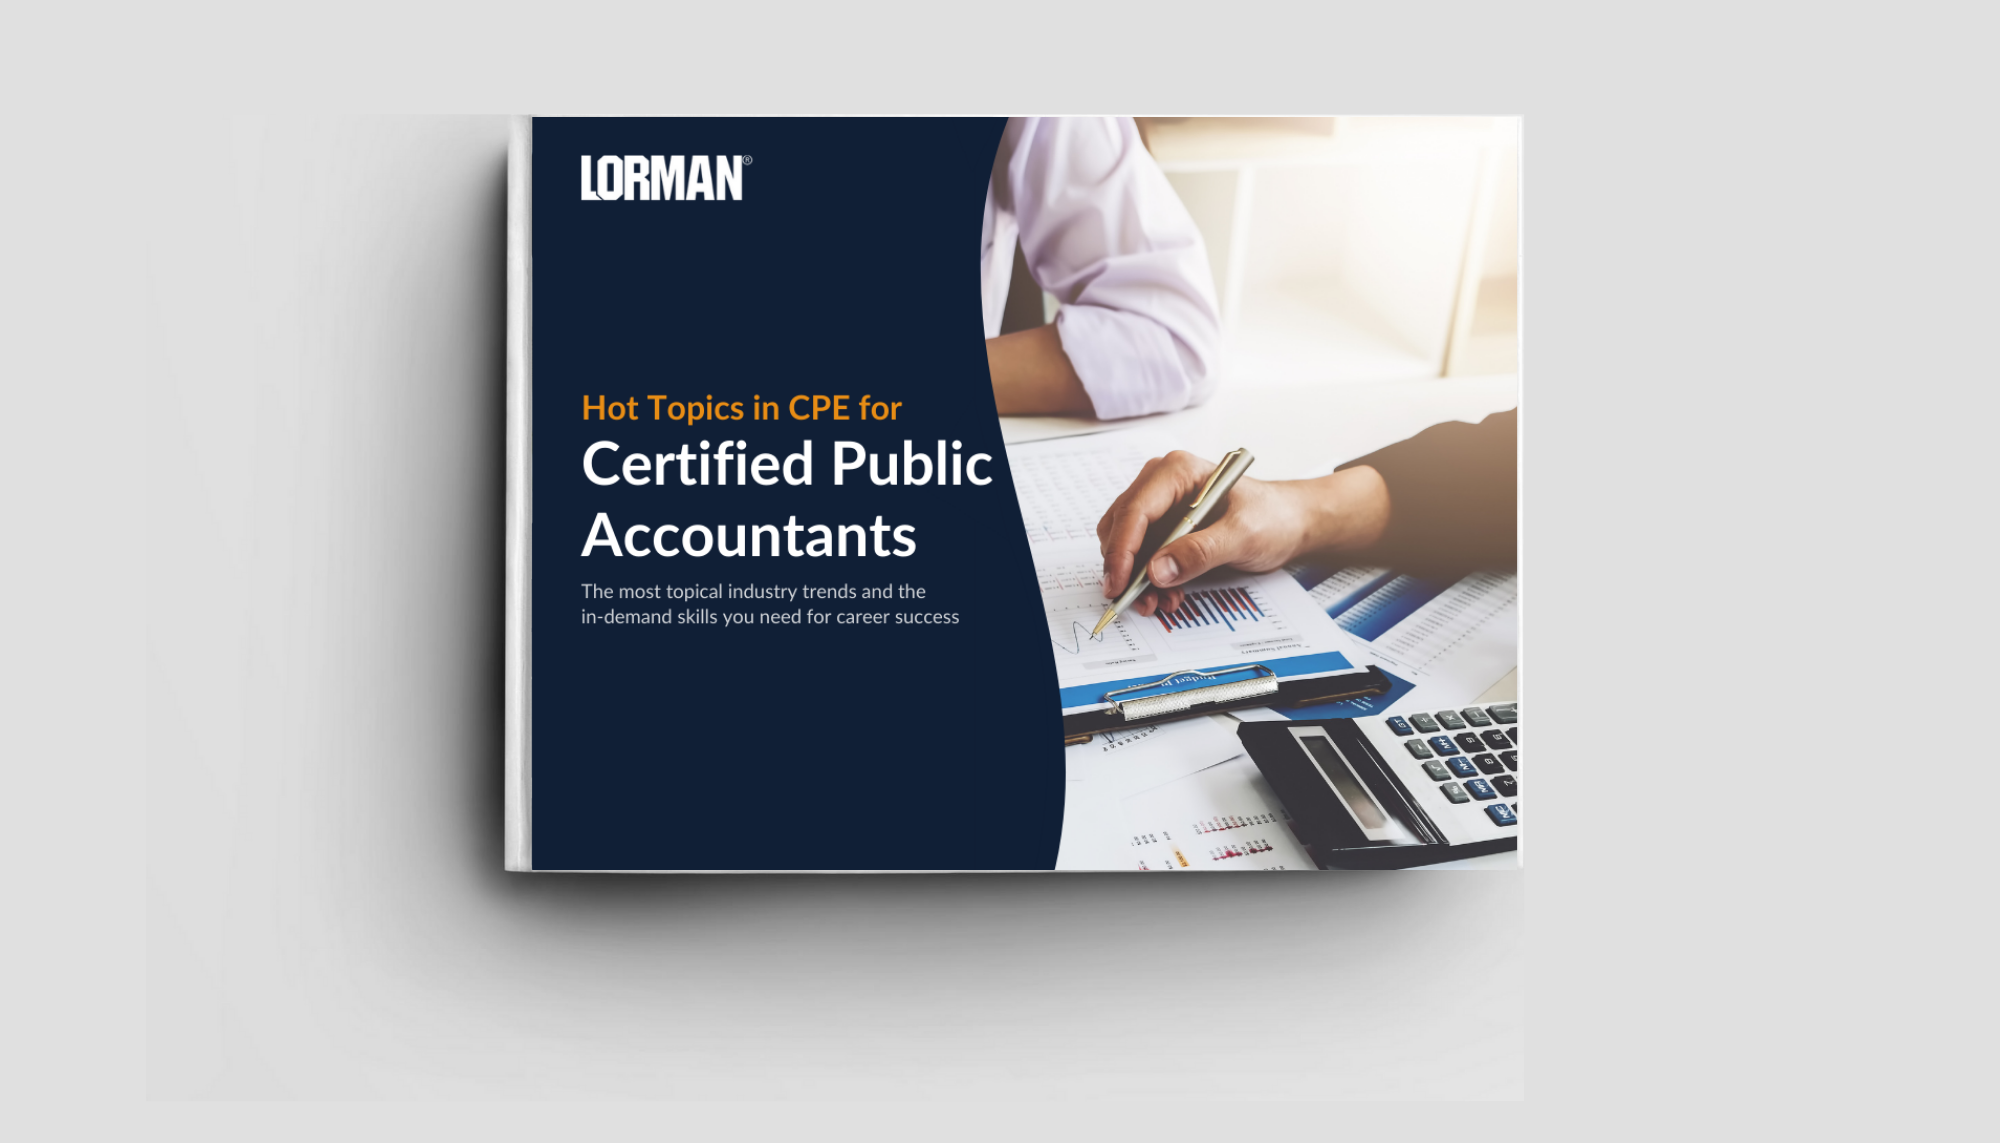 Hot Topics in CPE for Certified Public Accountants [eBook]